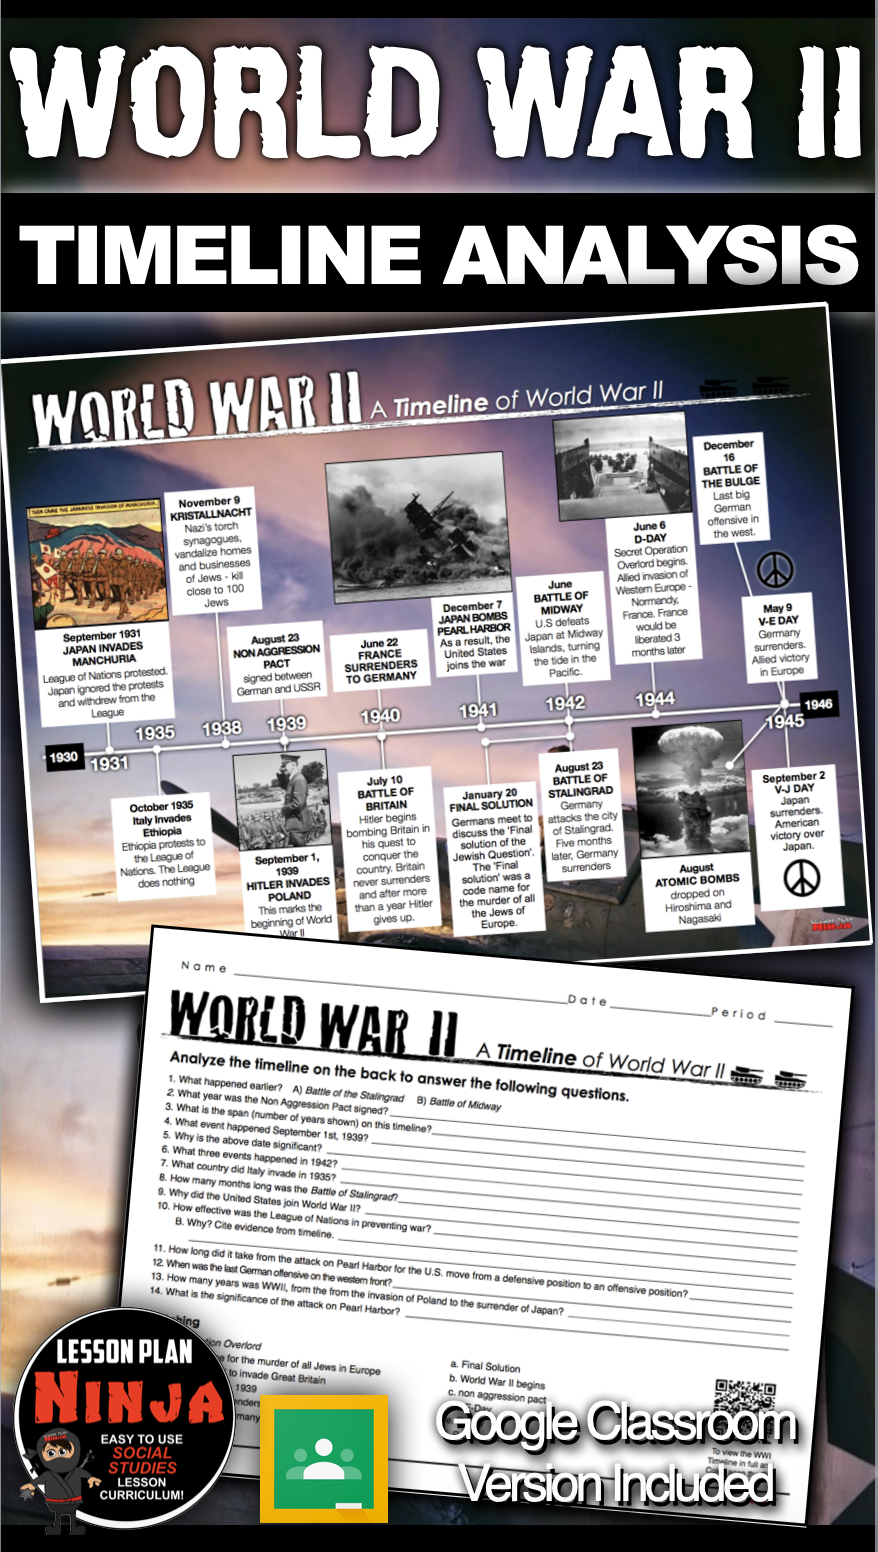 World War 2 Timeline Activity (WWII) + GoogleClass Version for Distance Learning